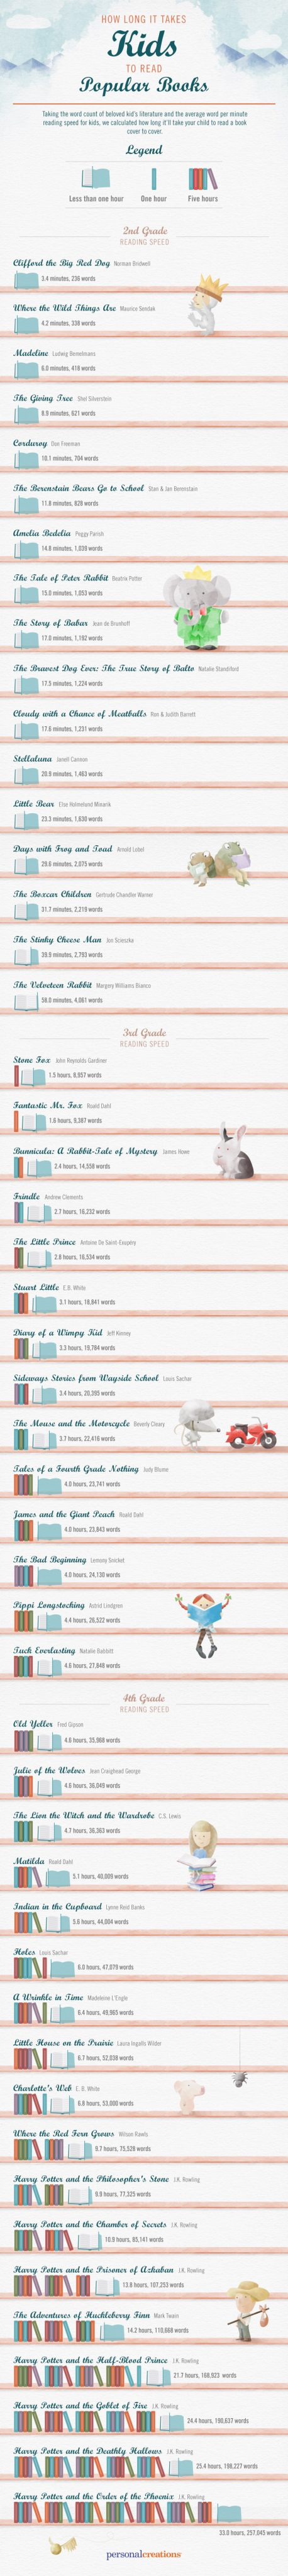 Infographic: How Long It Takes Kids to Read Popular Books Infographic